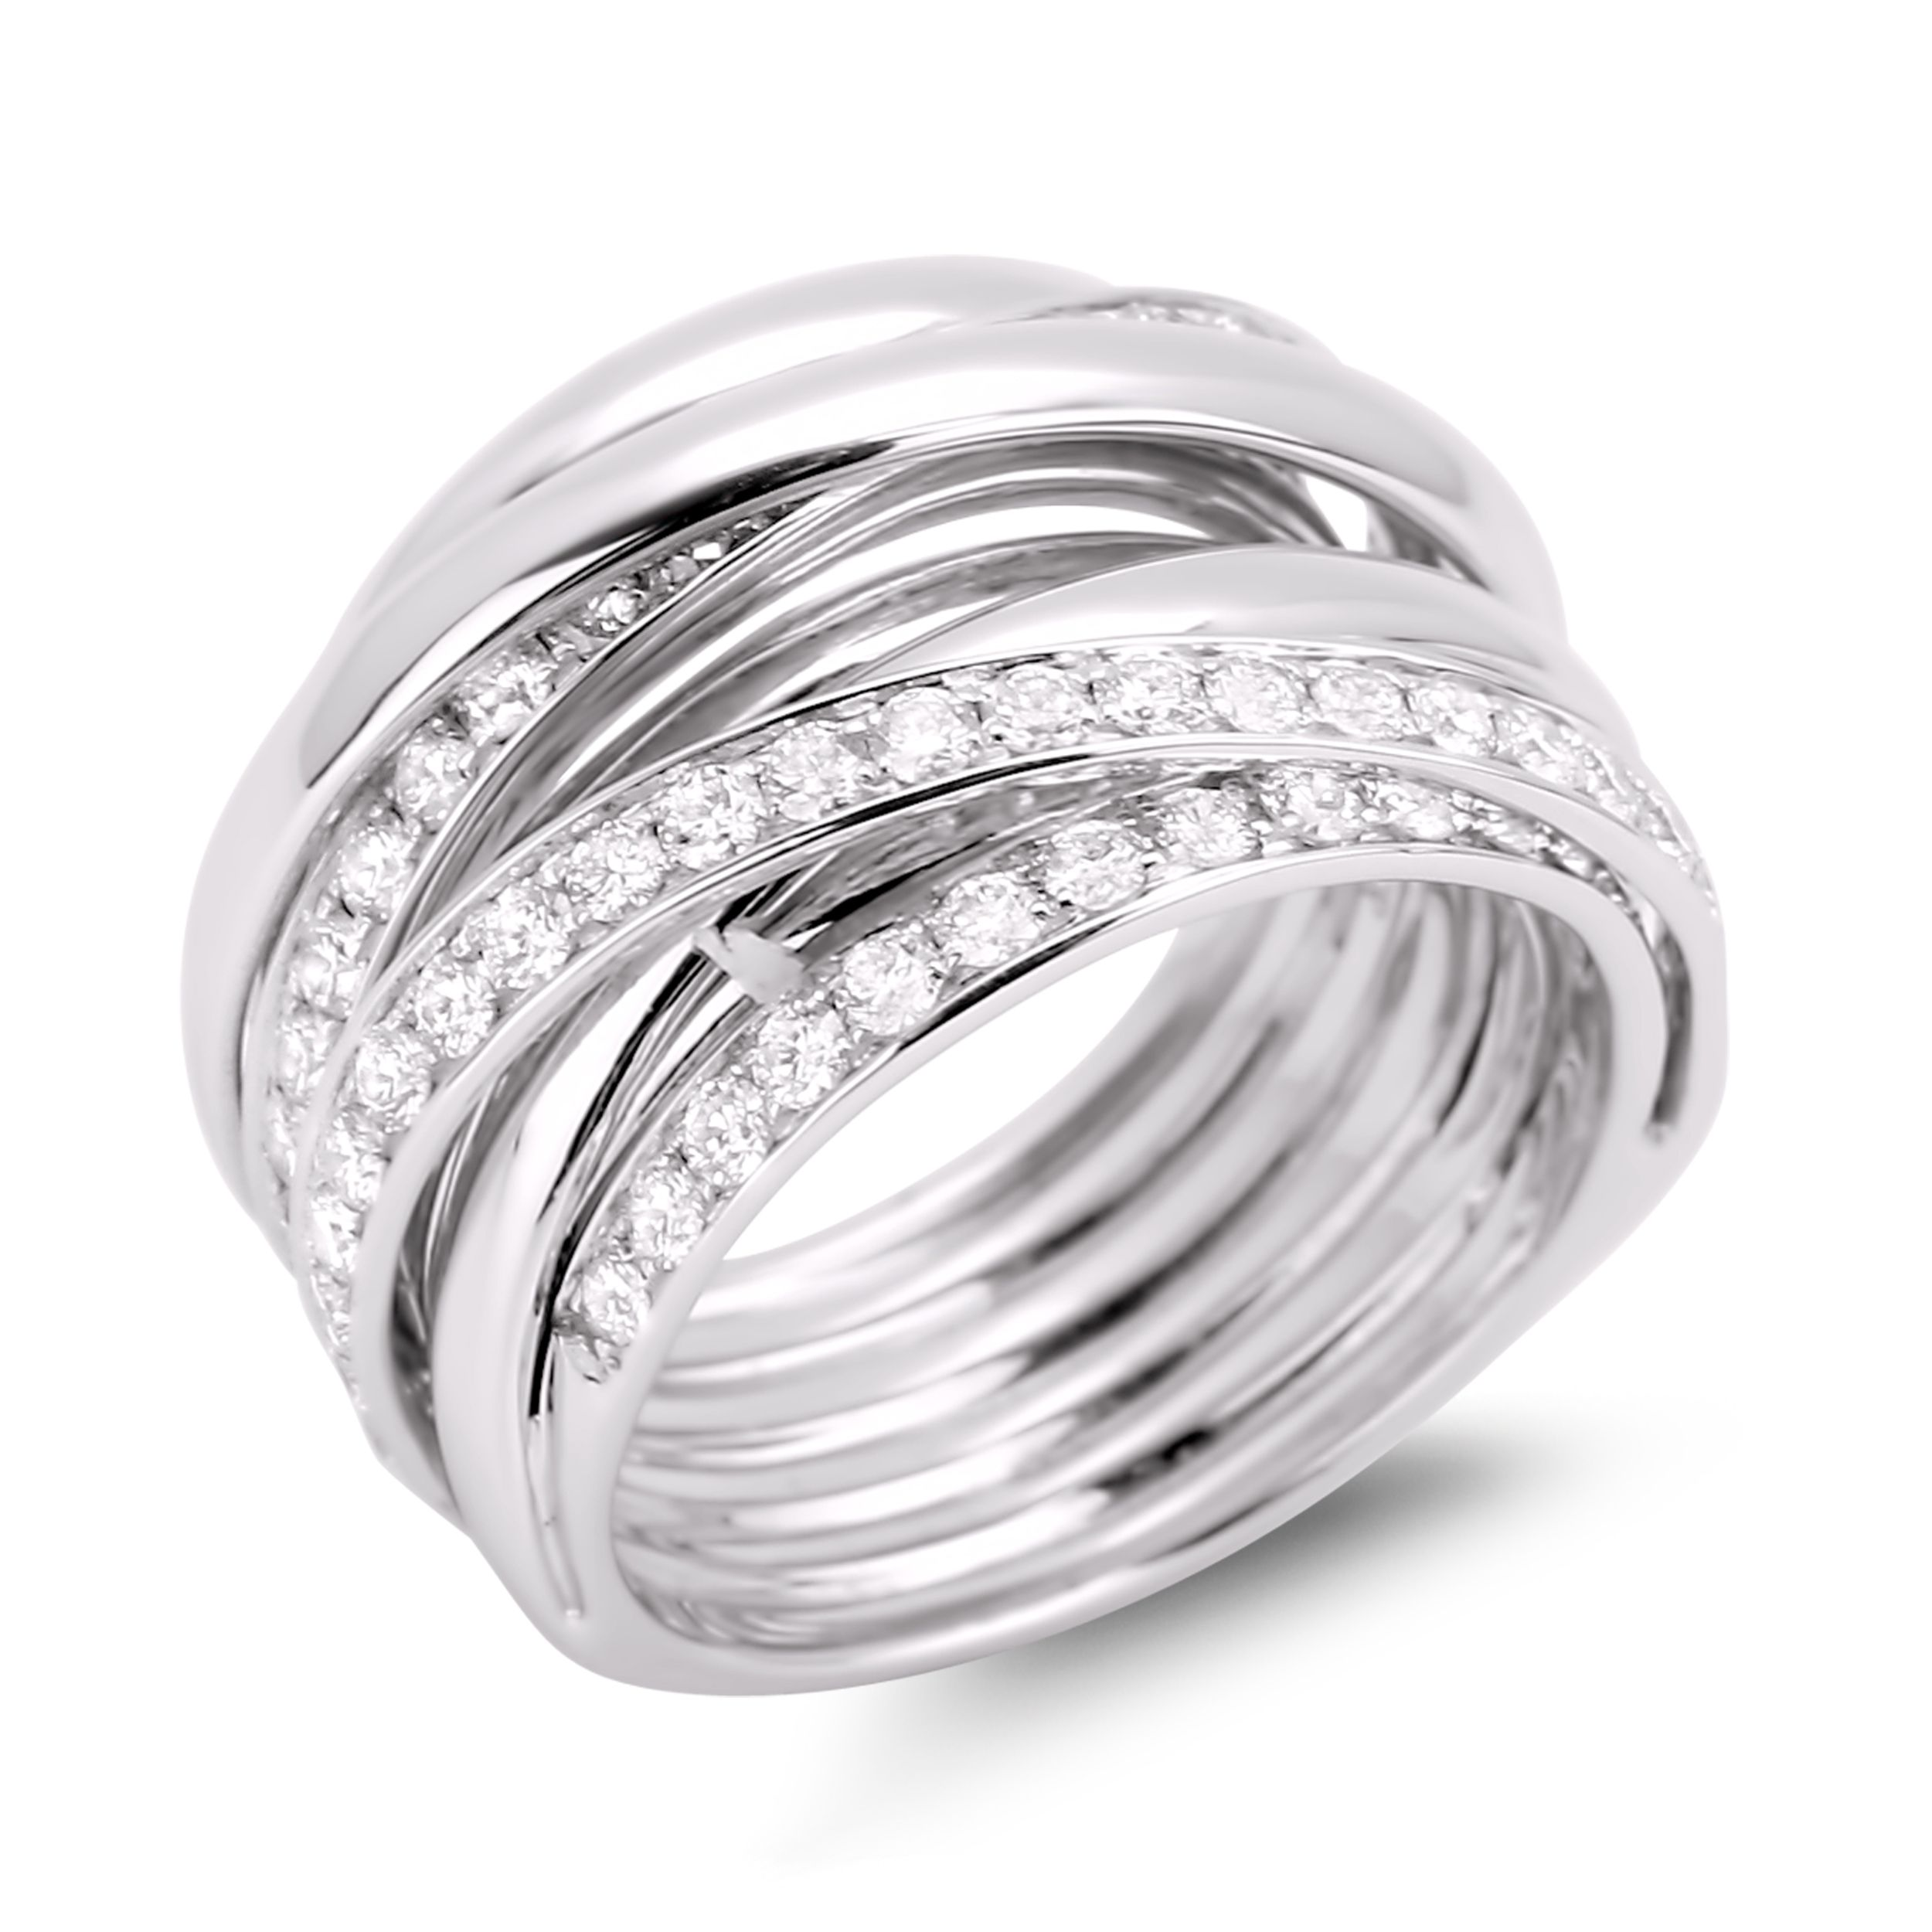 designs anniversary jewellery by eric americus diamond rings